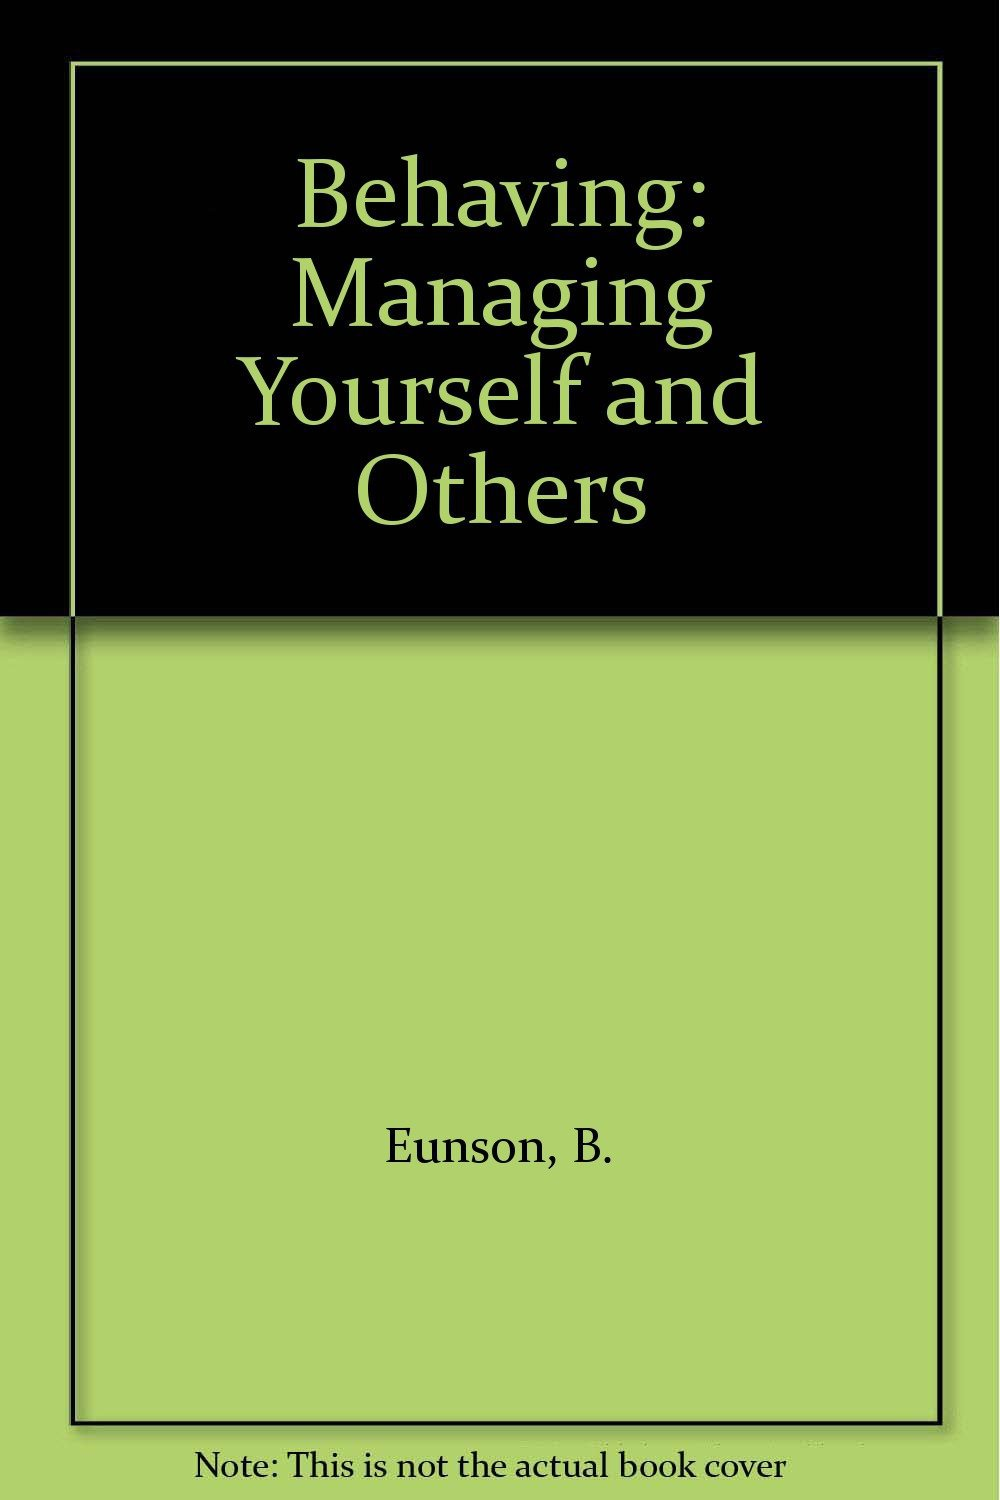 Behaving: Managing Yourself and Others